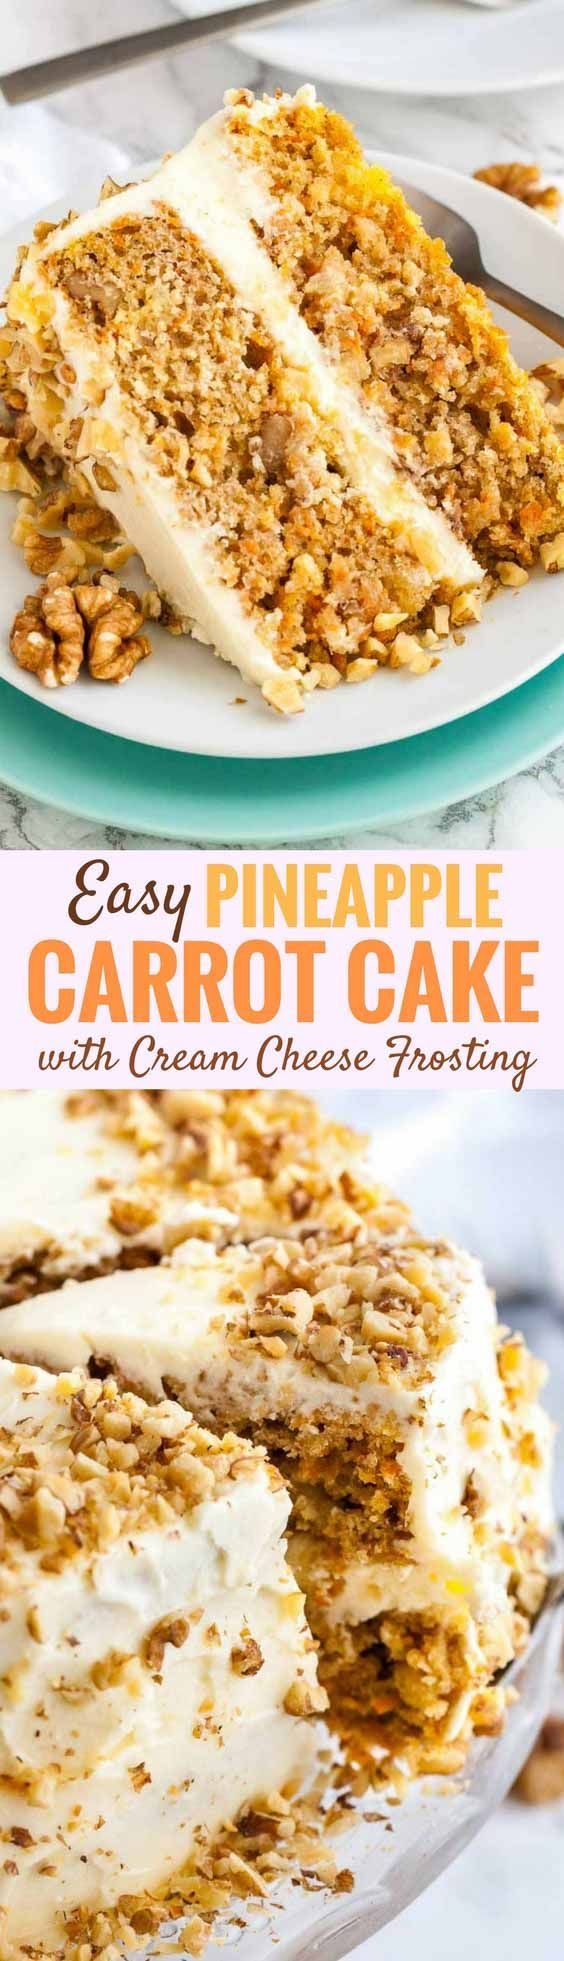 Carrot Pineapple Cake is easy to make from scratch without fancy equipment and tastes even better than traditional carrot cake. This moist carrot cake recipe is perfectly spiced, loaded with fresh carrots and sweet pineapple and layered with a flavorful cream cheese frosting!